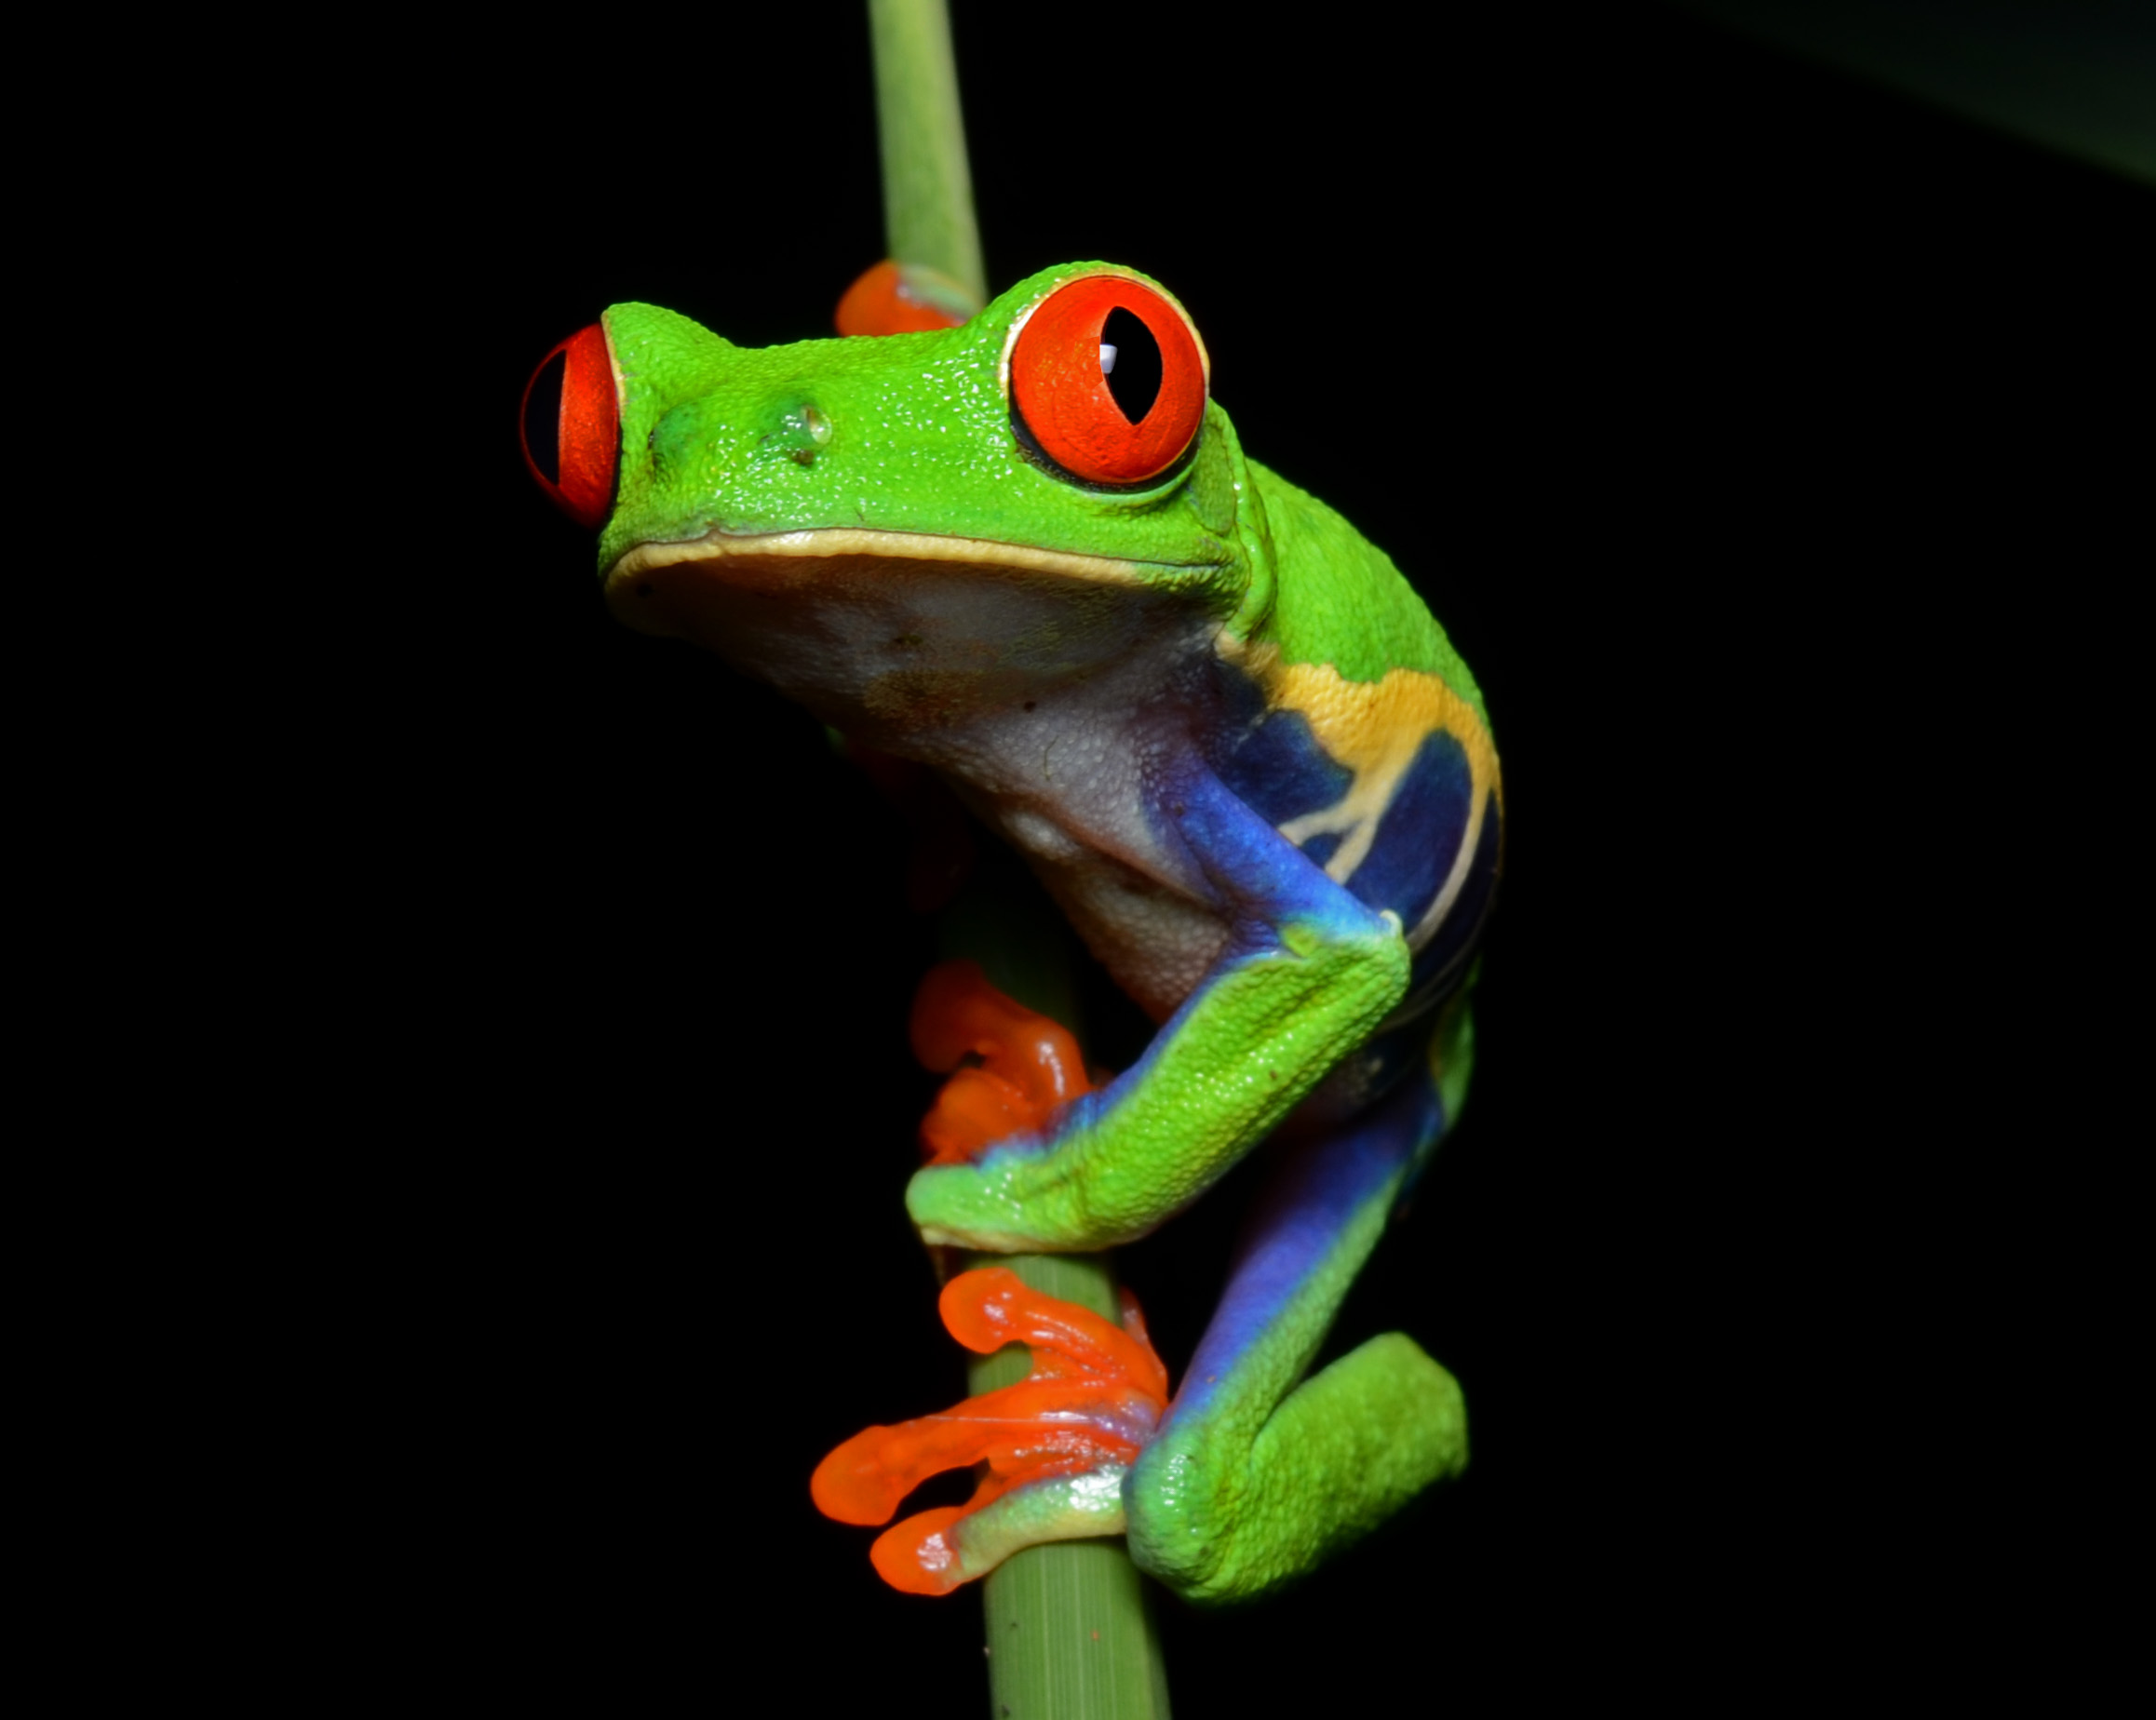 The iconic red eyed tree frog